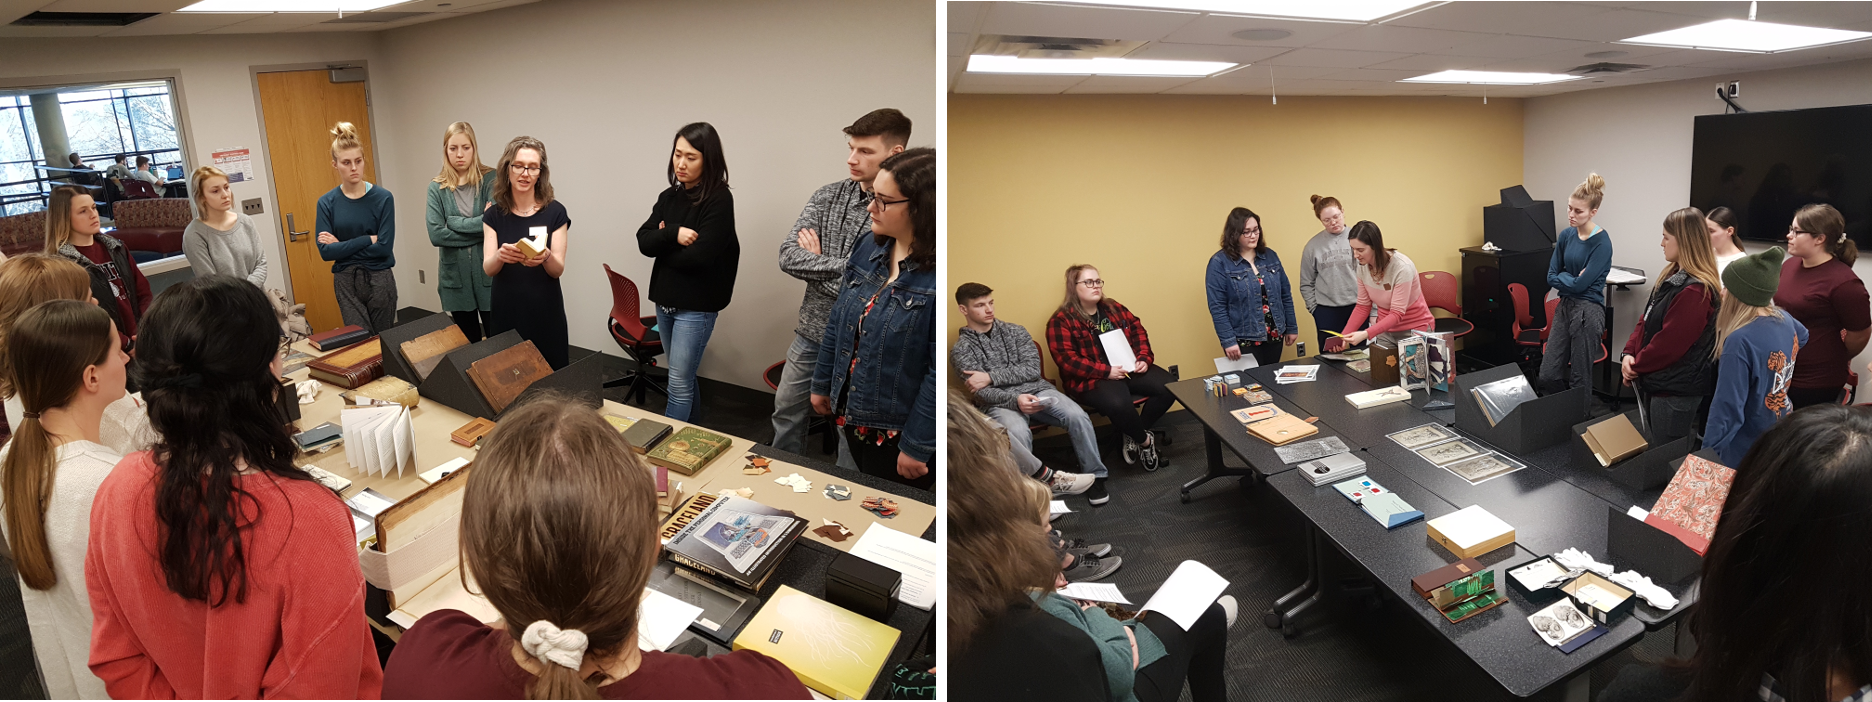 A montage of two photos. Each shows the class surrounded a table with books laid out on the table. In the first conservator Sonya Barron is holding a book and describing it. In the second archivist Amy Bishop is picking up a book she is discussing.